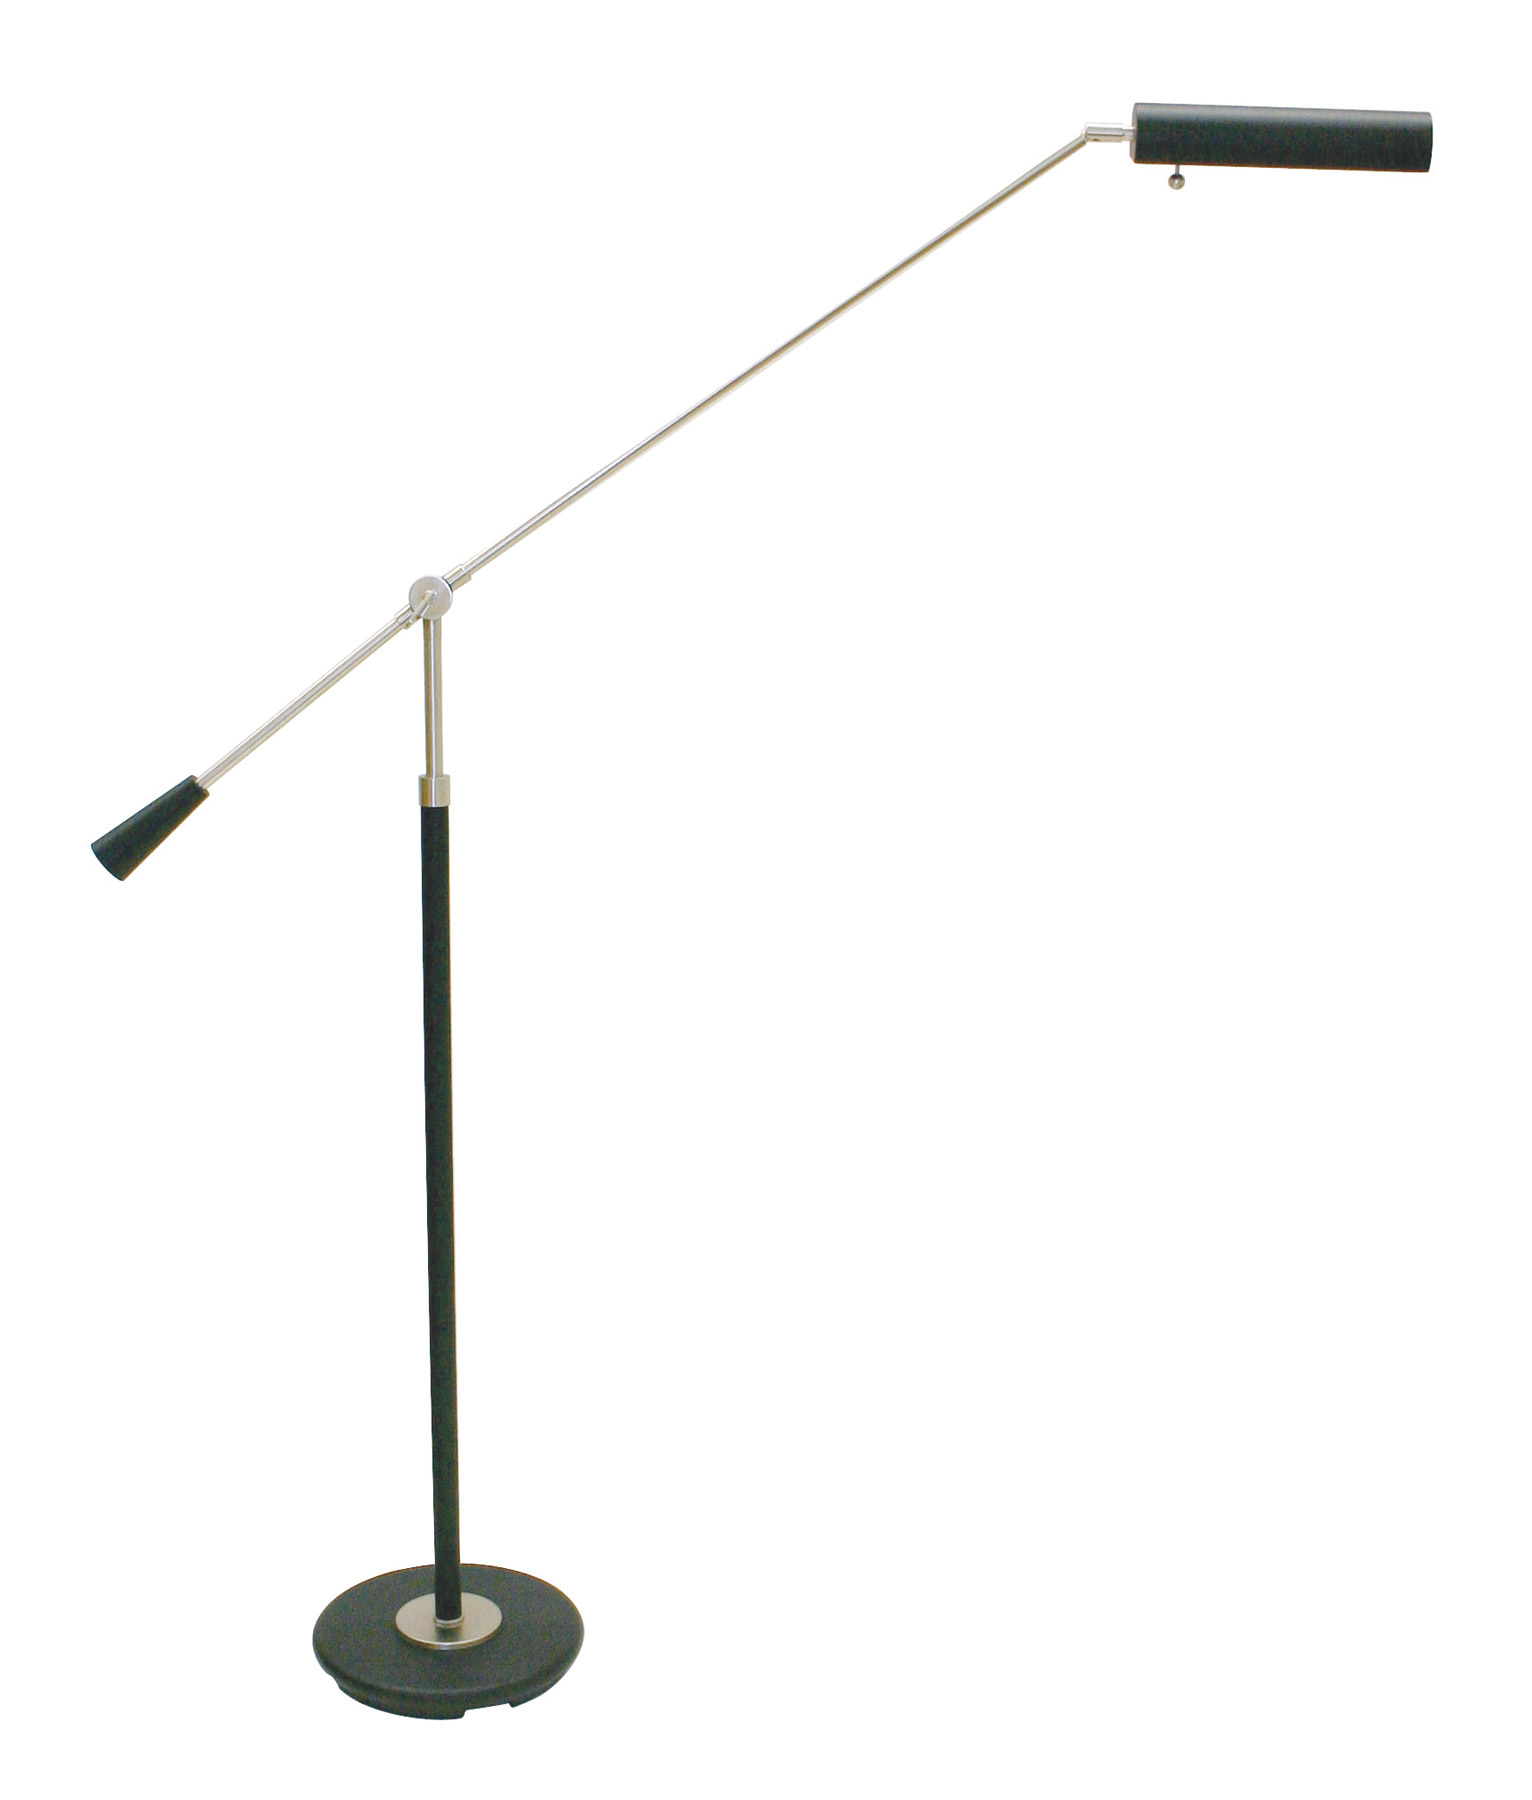 House of troy pfl 527 grand piano floor lamps piano lamp mozeypictures Image collections